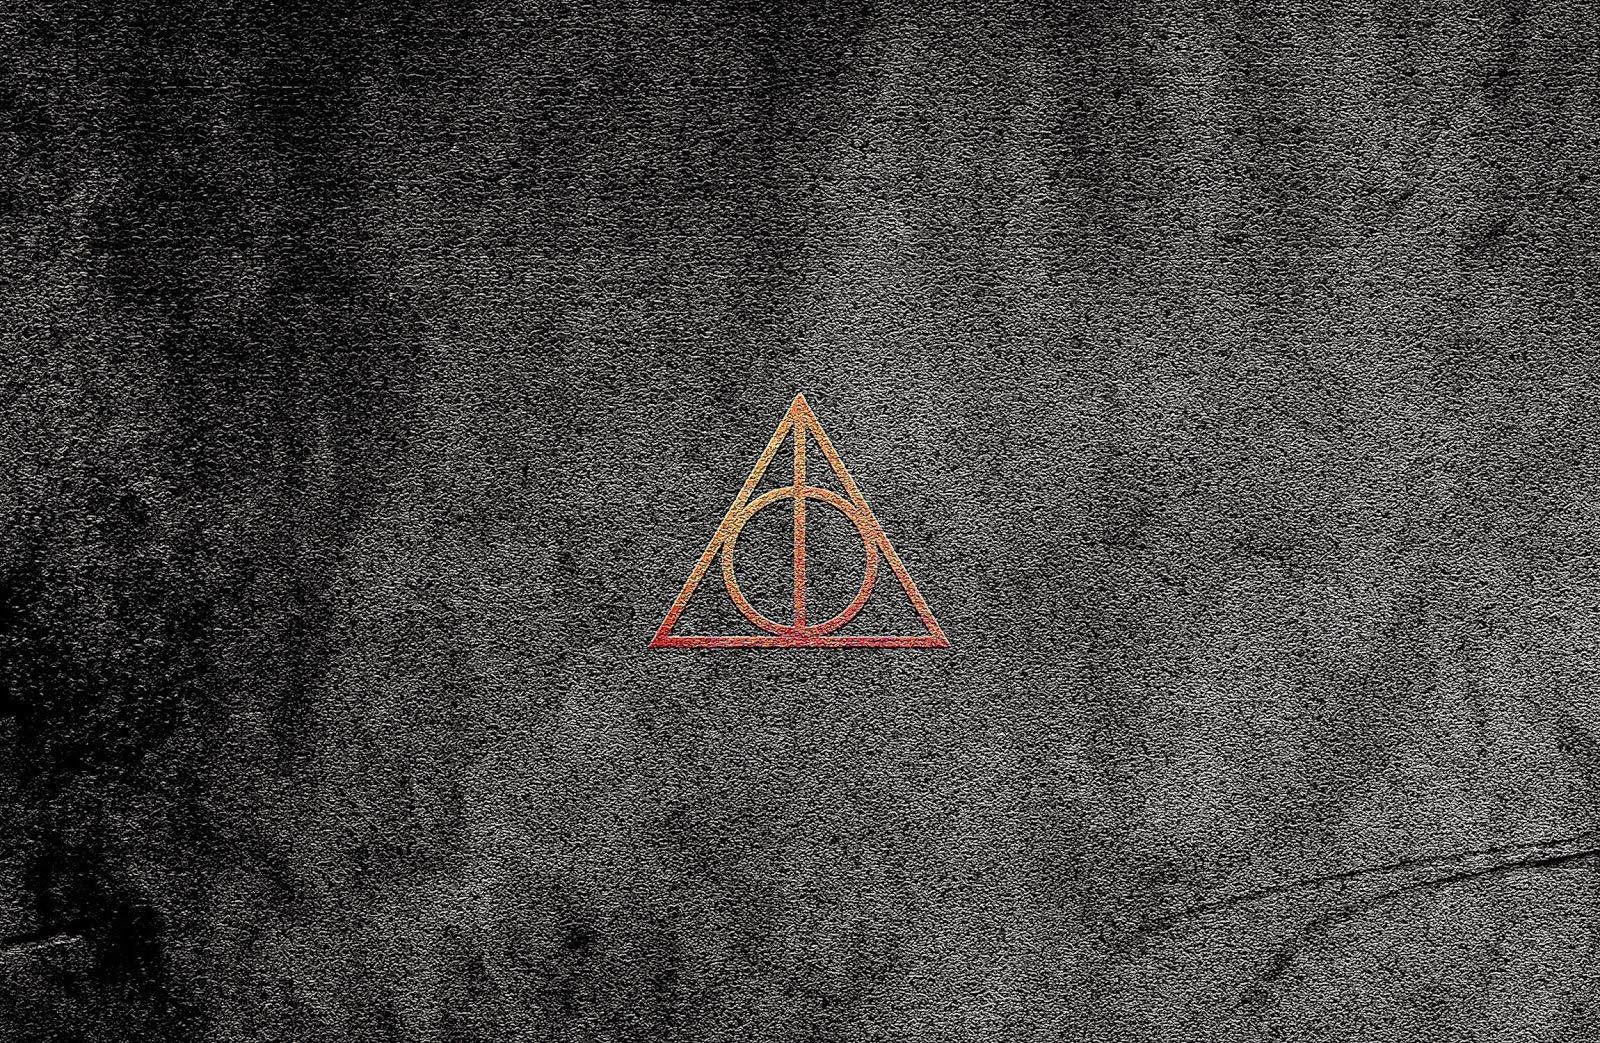 Harry Potter Wallpapers For Desktop Free Wallpaper Hd